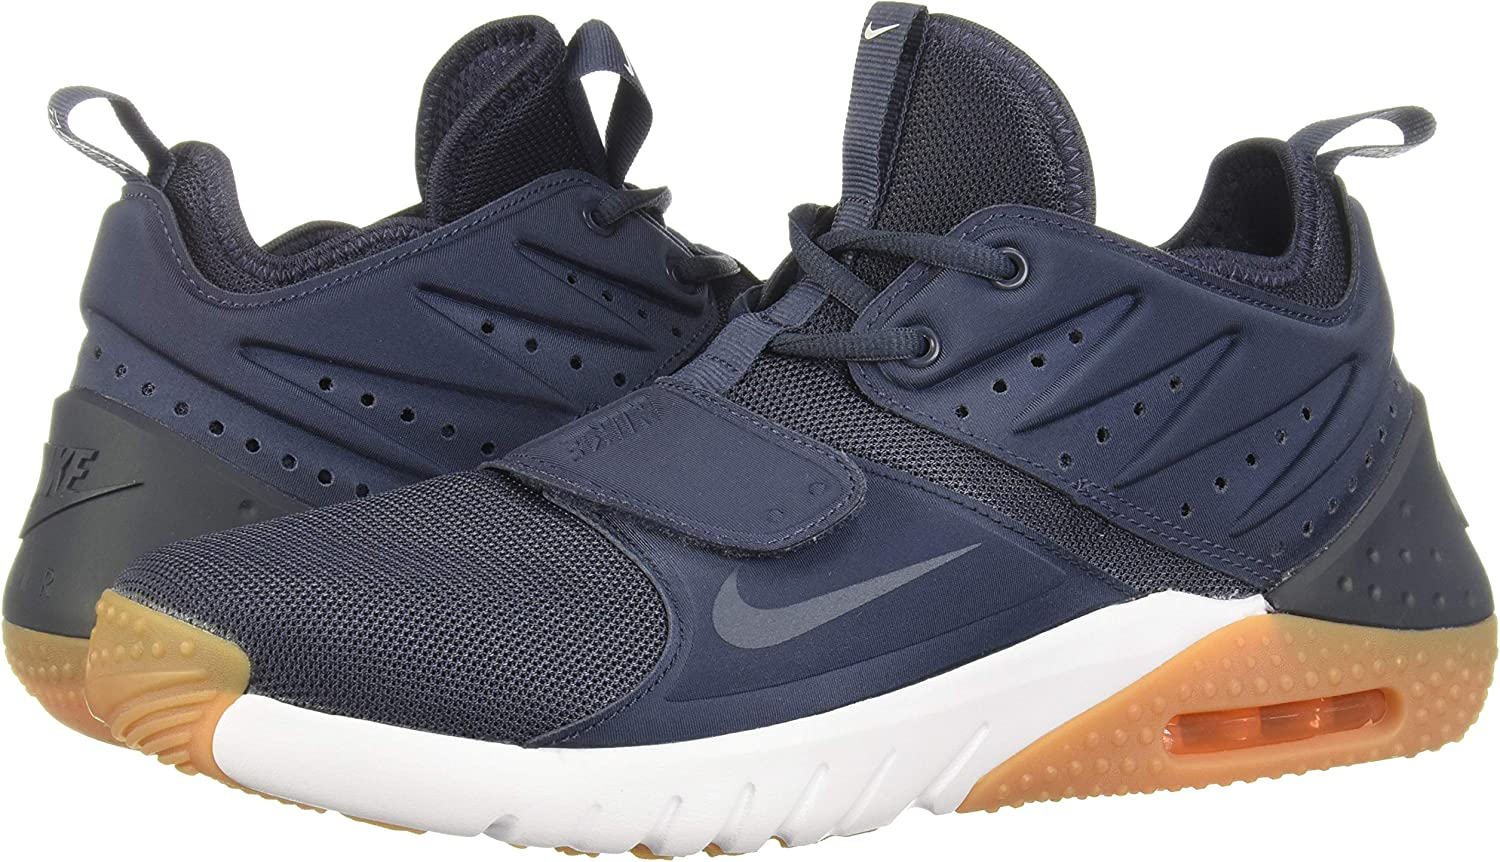 Nike Air Max Trainer 1, Chaussures de Running Compétition Homme